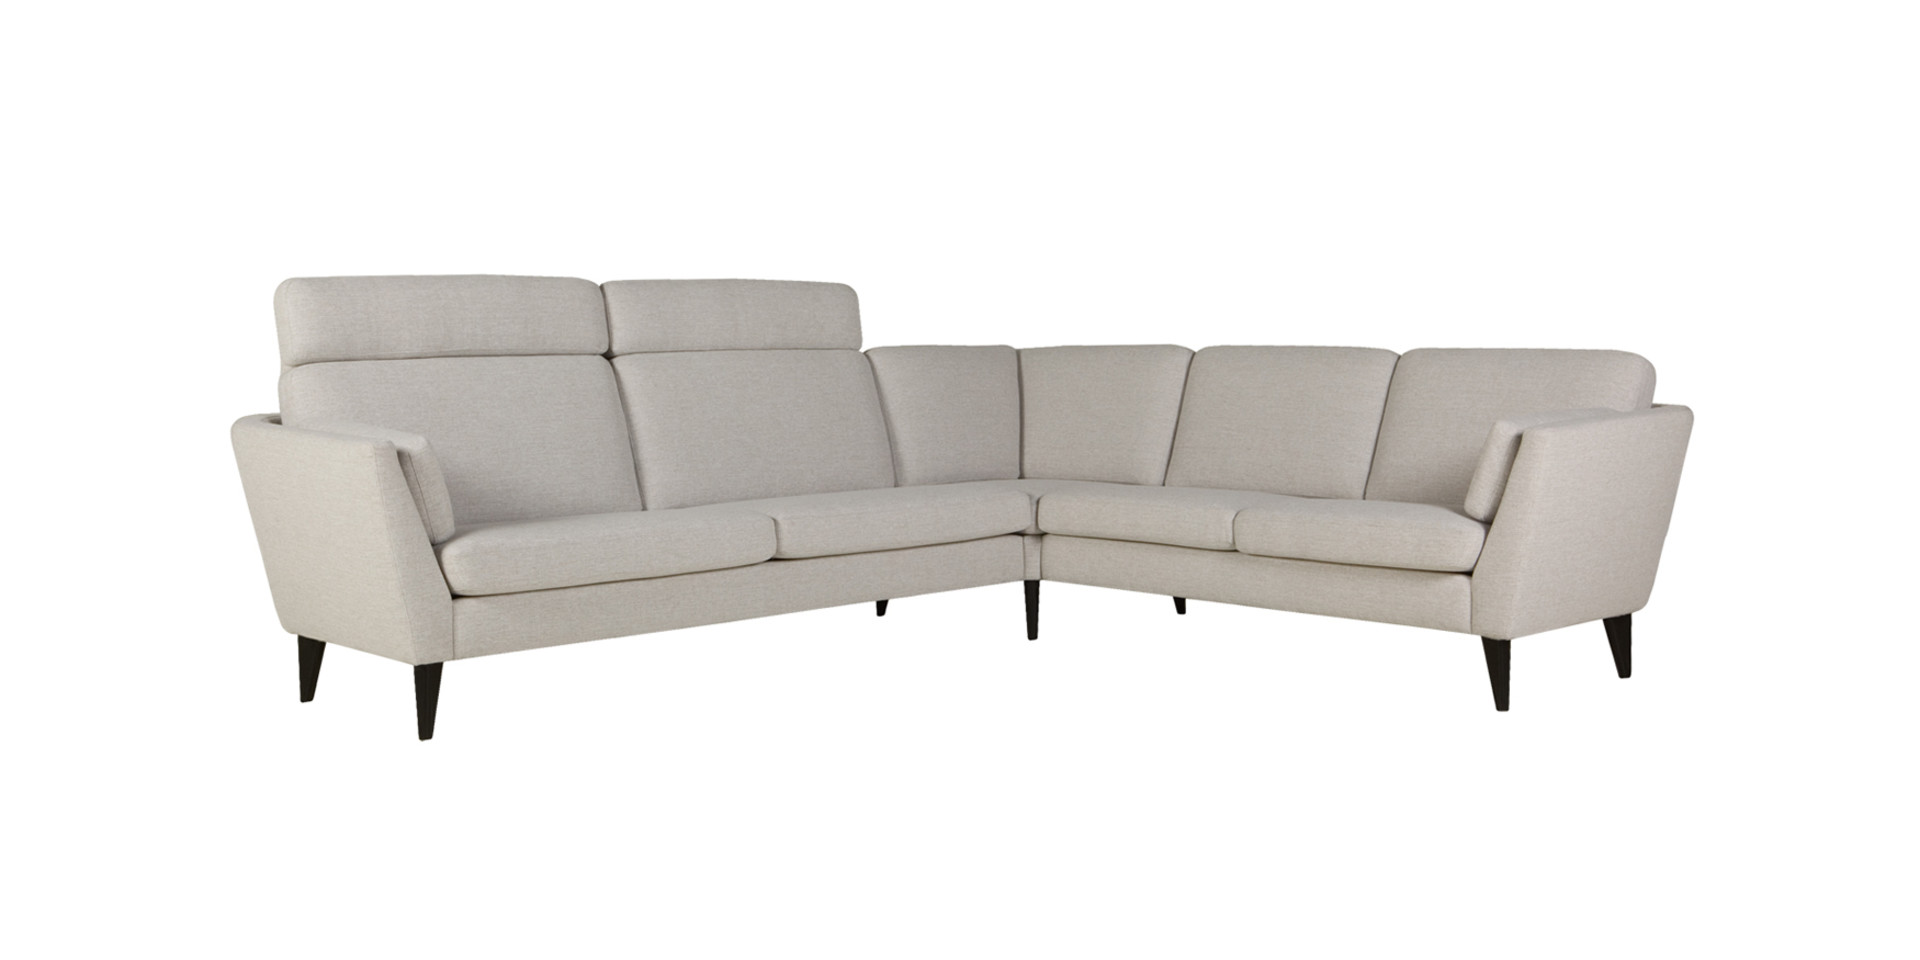 sits-mynta-angle-set5_surprice2_grey_beige_2